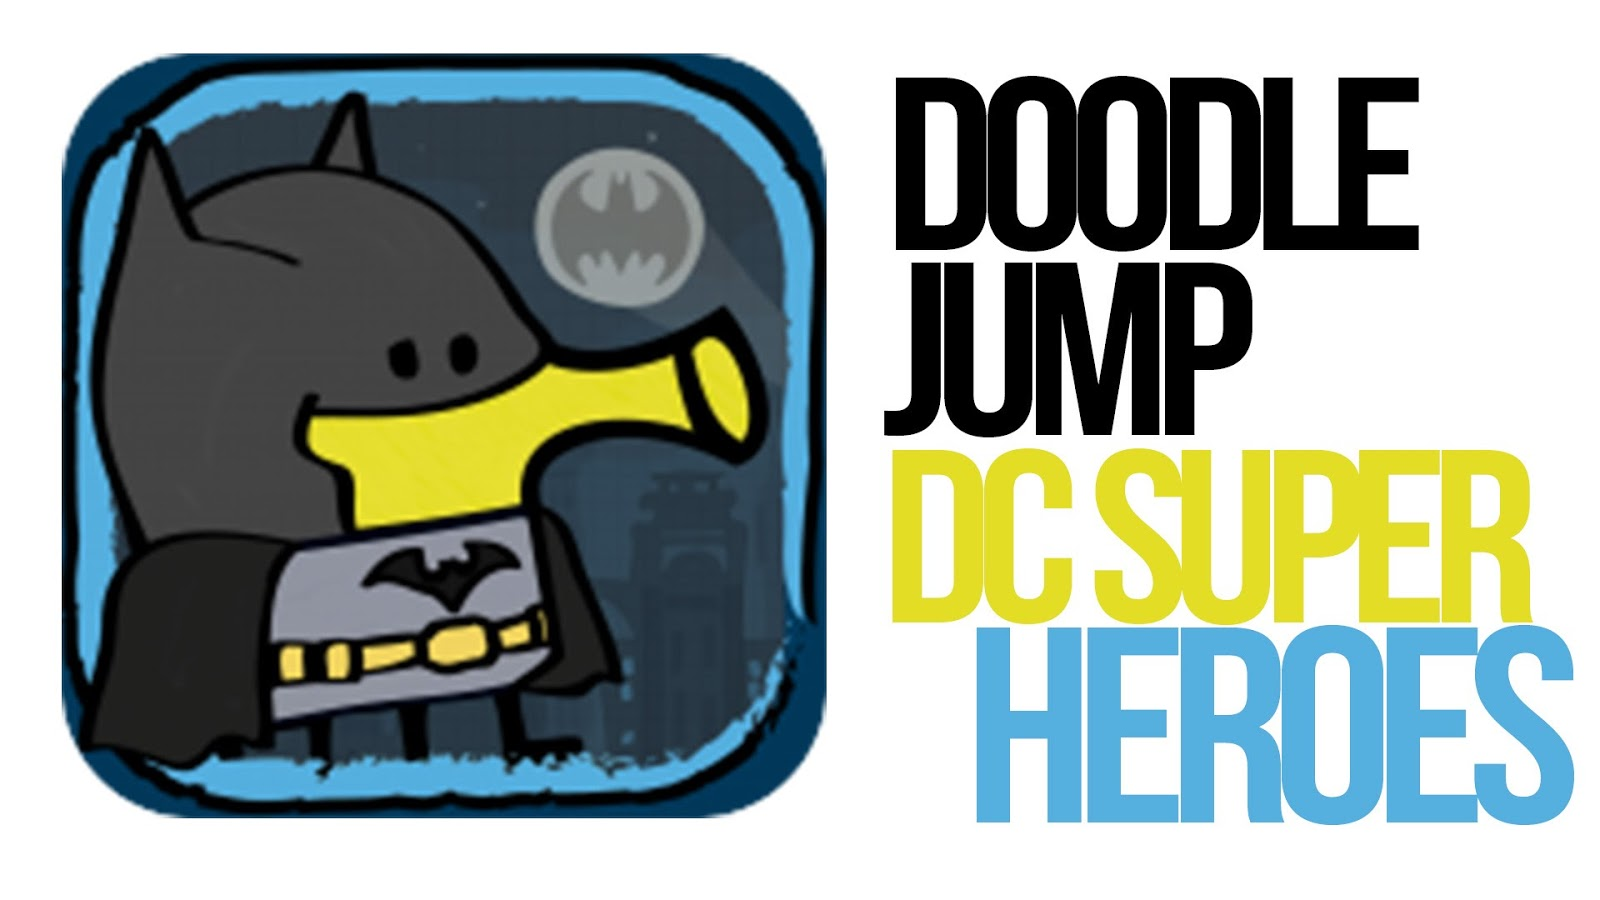 Doodle Jump Dc New Superhero In The Town Windows Hive